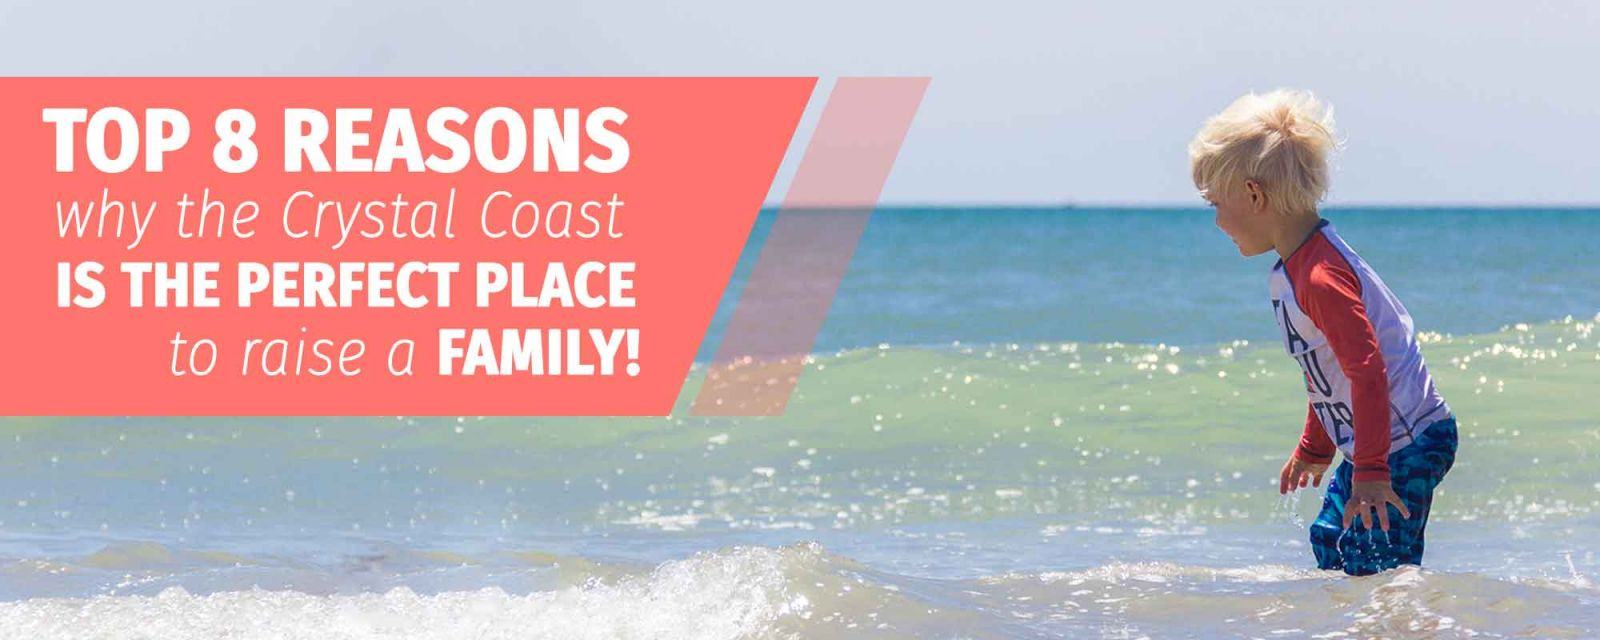 TOP 8 REASONS WHY THE CRYSTAL COAST IS THE PERFECT PLACE TO RAISE A FAMILY